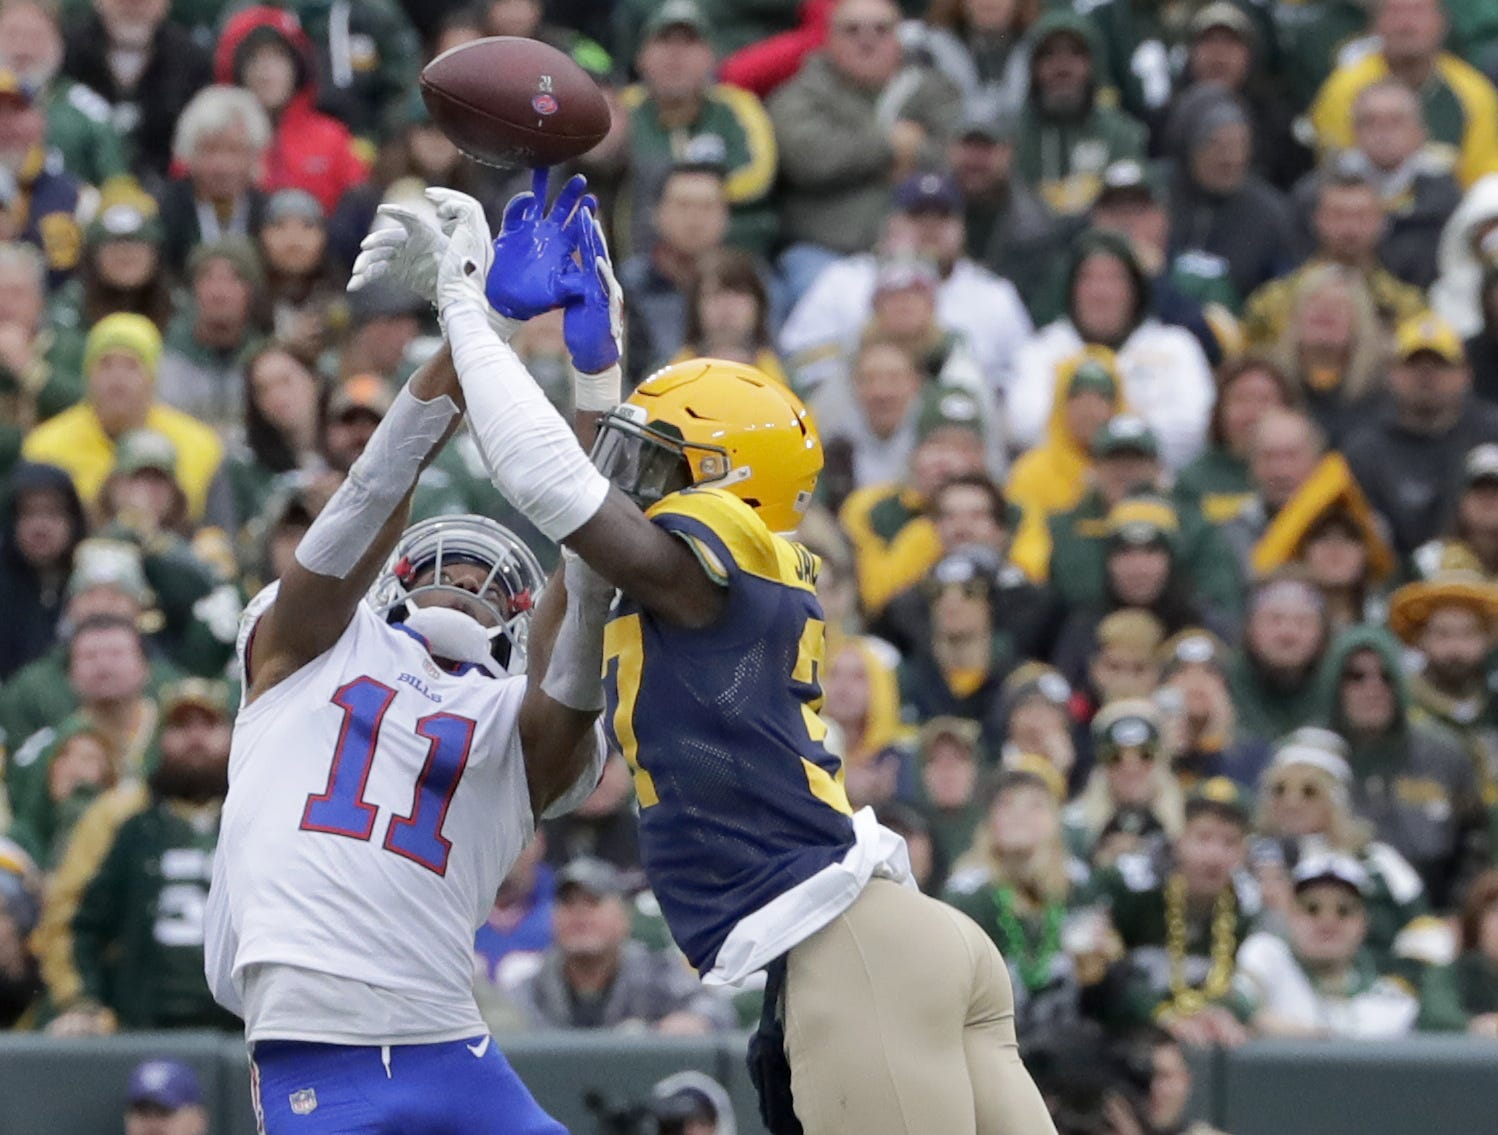 Green Bay Packers cornerback Josh Jackson breaks up a pass intended for Buffalo Bills wide receiver Zay Jones on Sunday, September 30, 2018, at Lambeau Field in Green Bay, Wis.  Wm. Glasheen/USA TODAY NETWORK-Wisconsin.